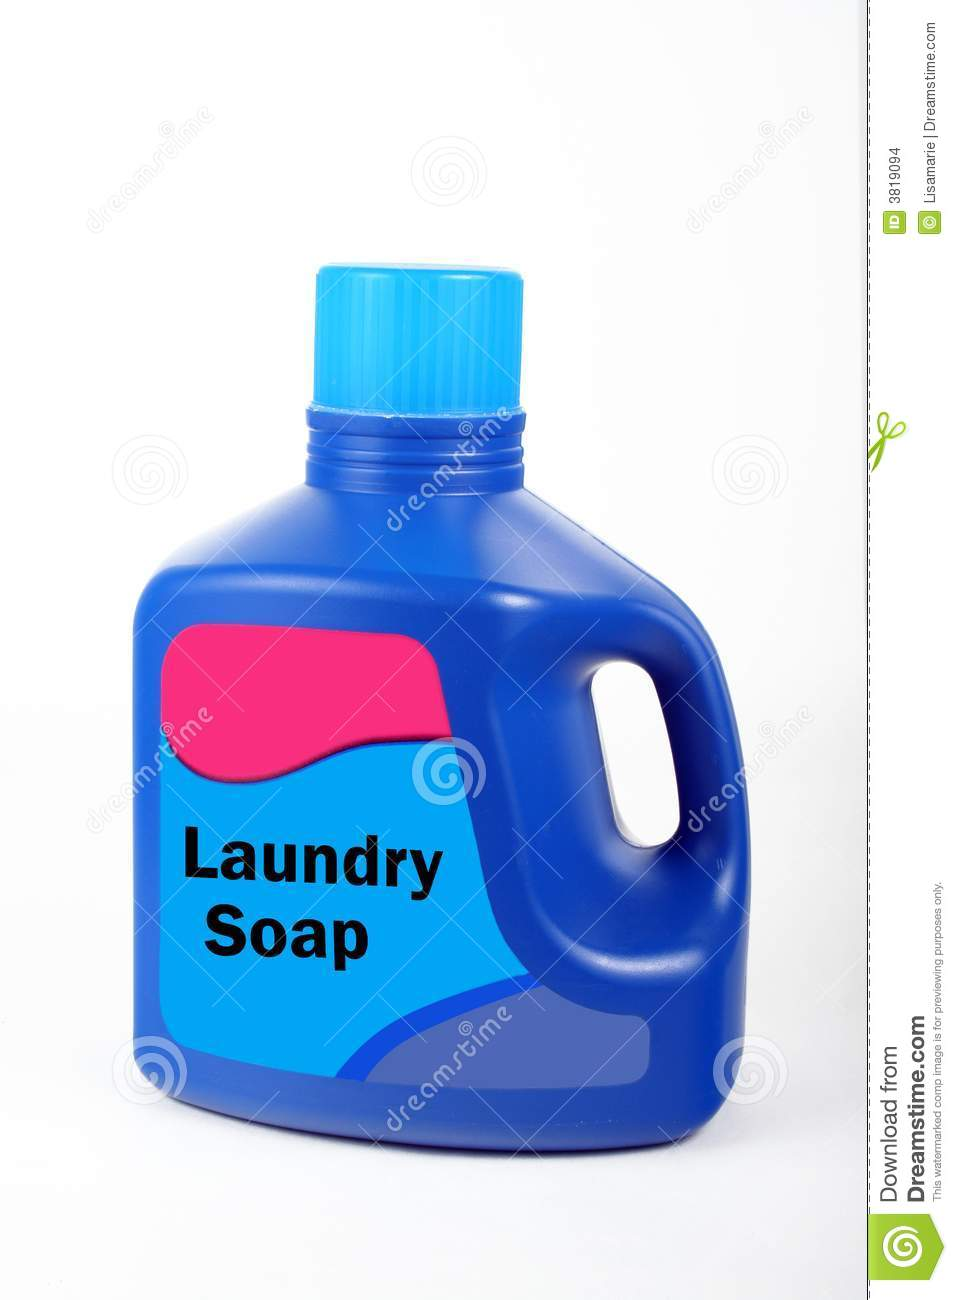 Laundry Detergent Clipart laundry detergent stock images - image: 3819094